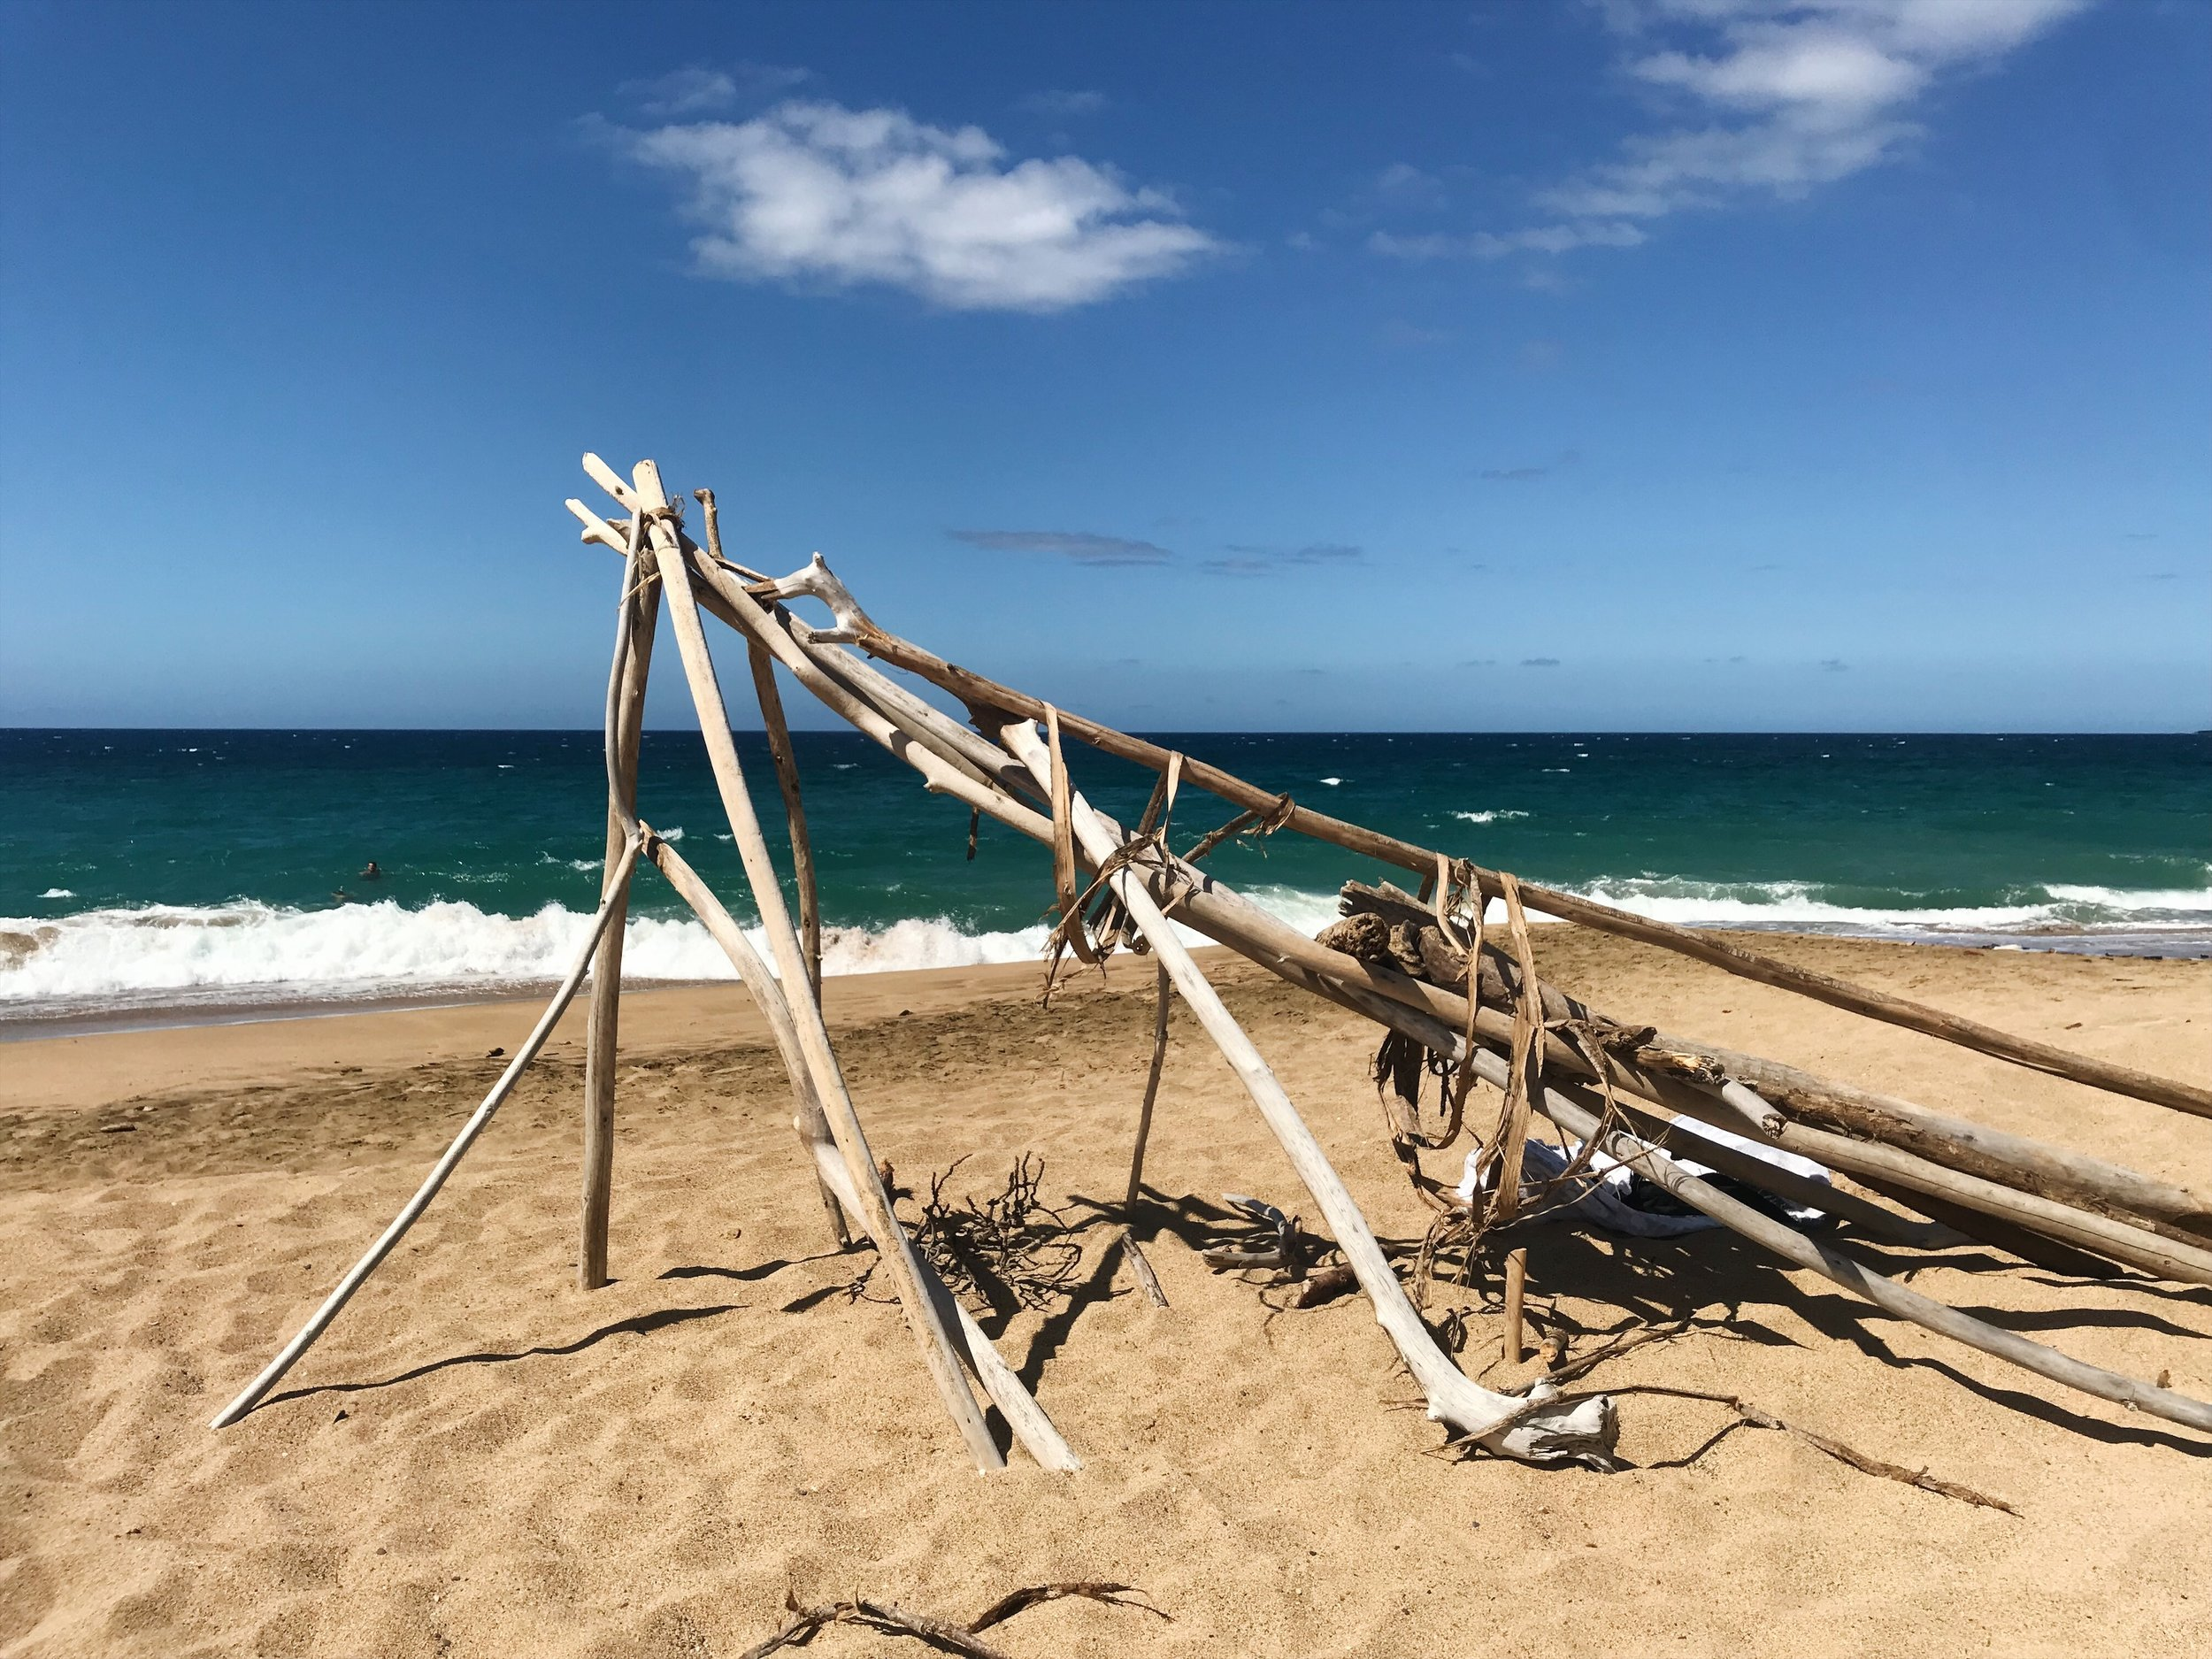 driftwood structure maui travel photography wall art nature inspired.JPG